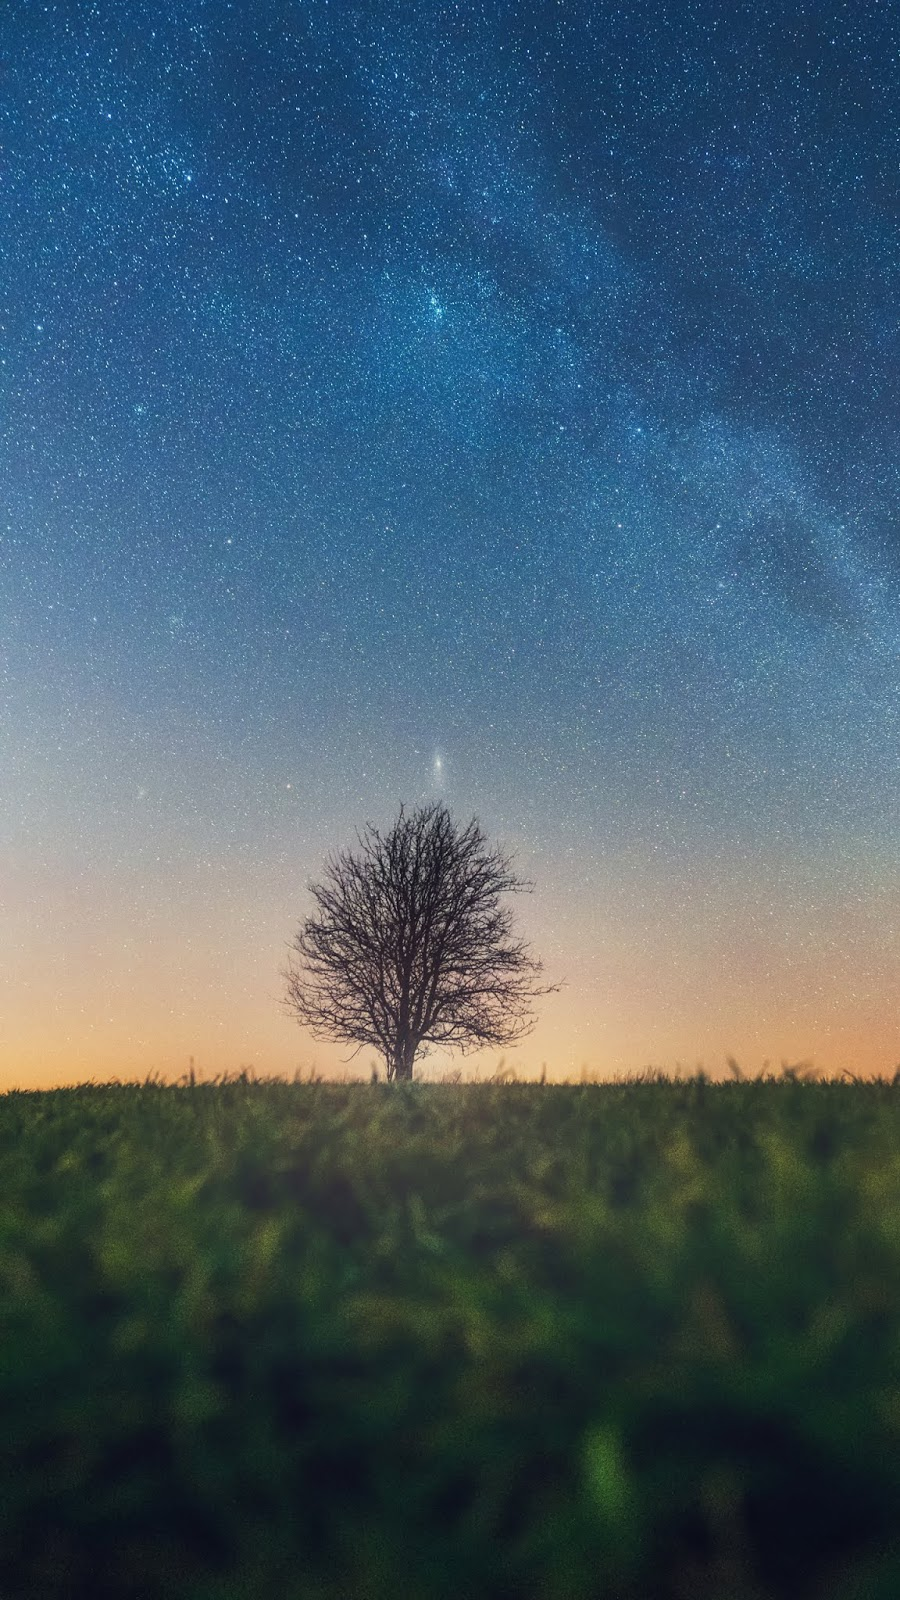 Lonely tree in the starry sky